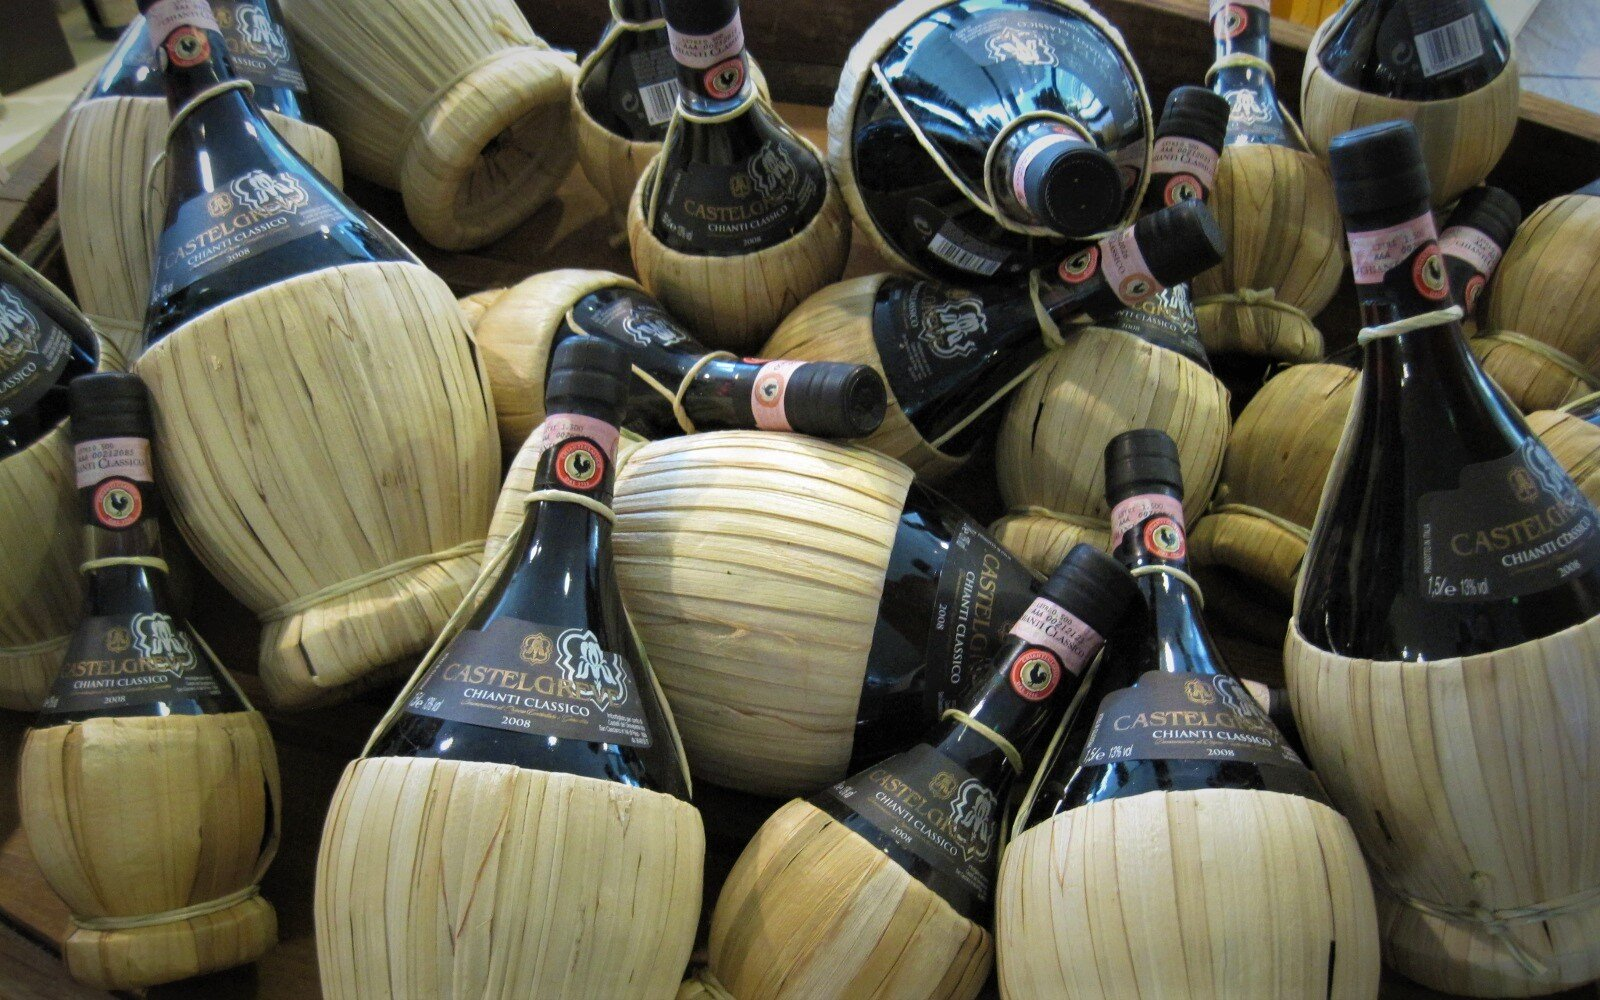 A virtual trip to Tuscany and its greatest wines - from classics to Super Tuscans to whites